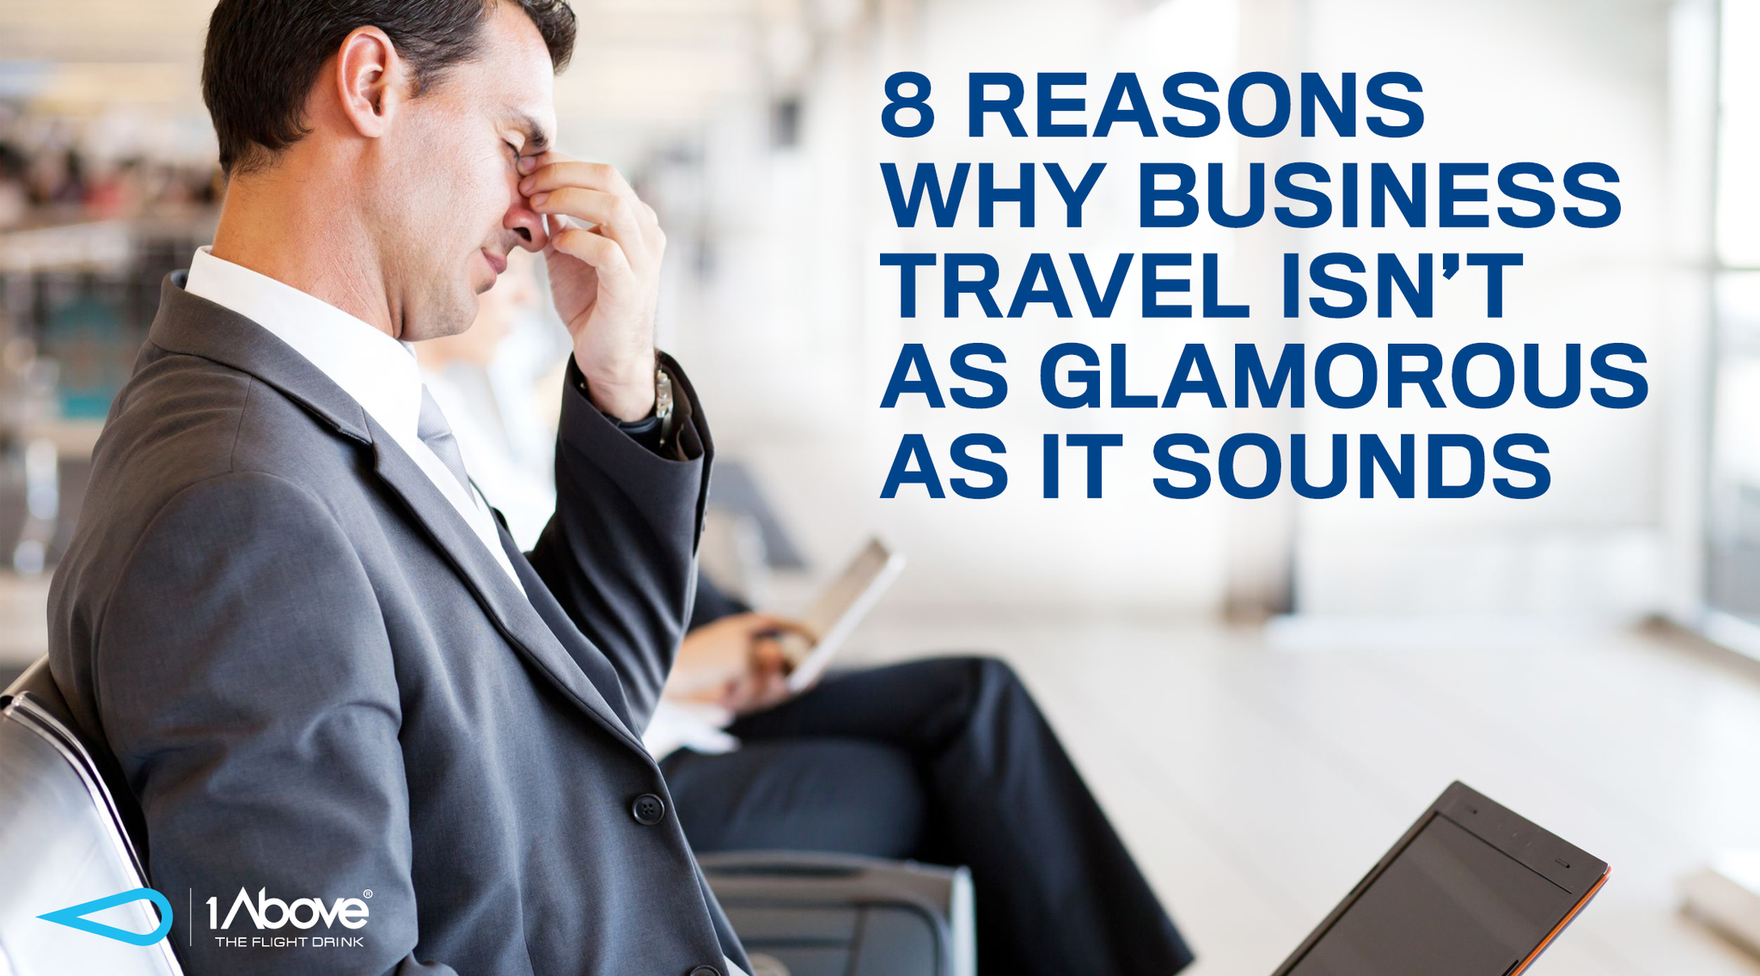 8 REASONS WHY BUSINESS TRAVEL ISN'T AS GLAMOROUS AS IT SOUNDS